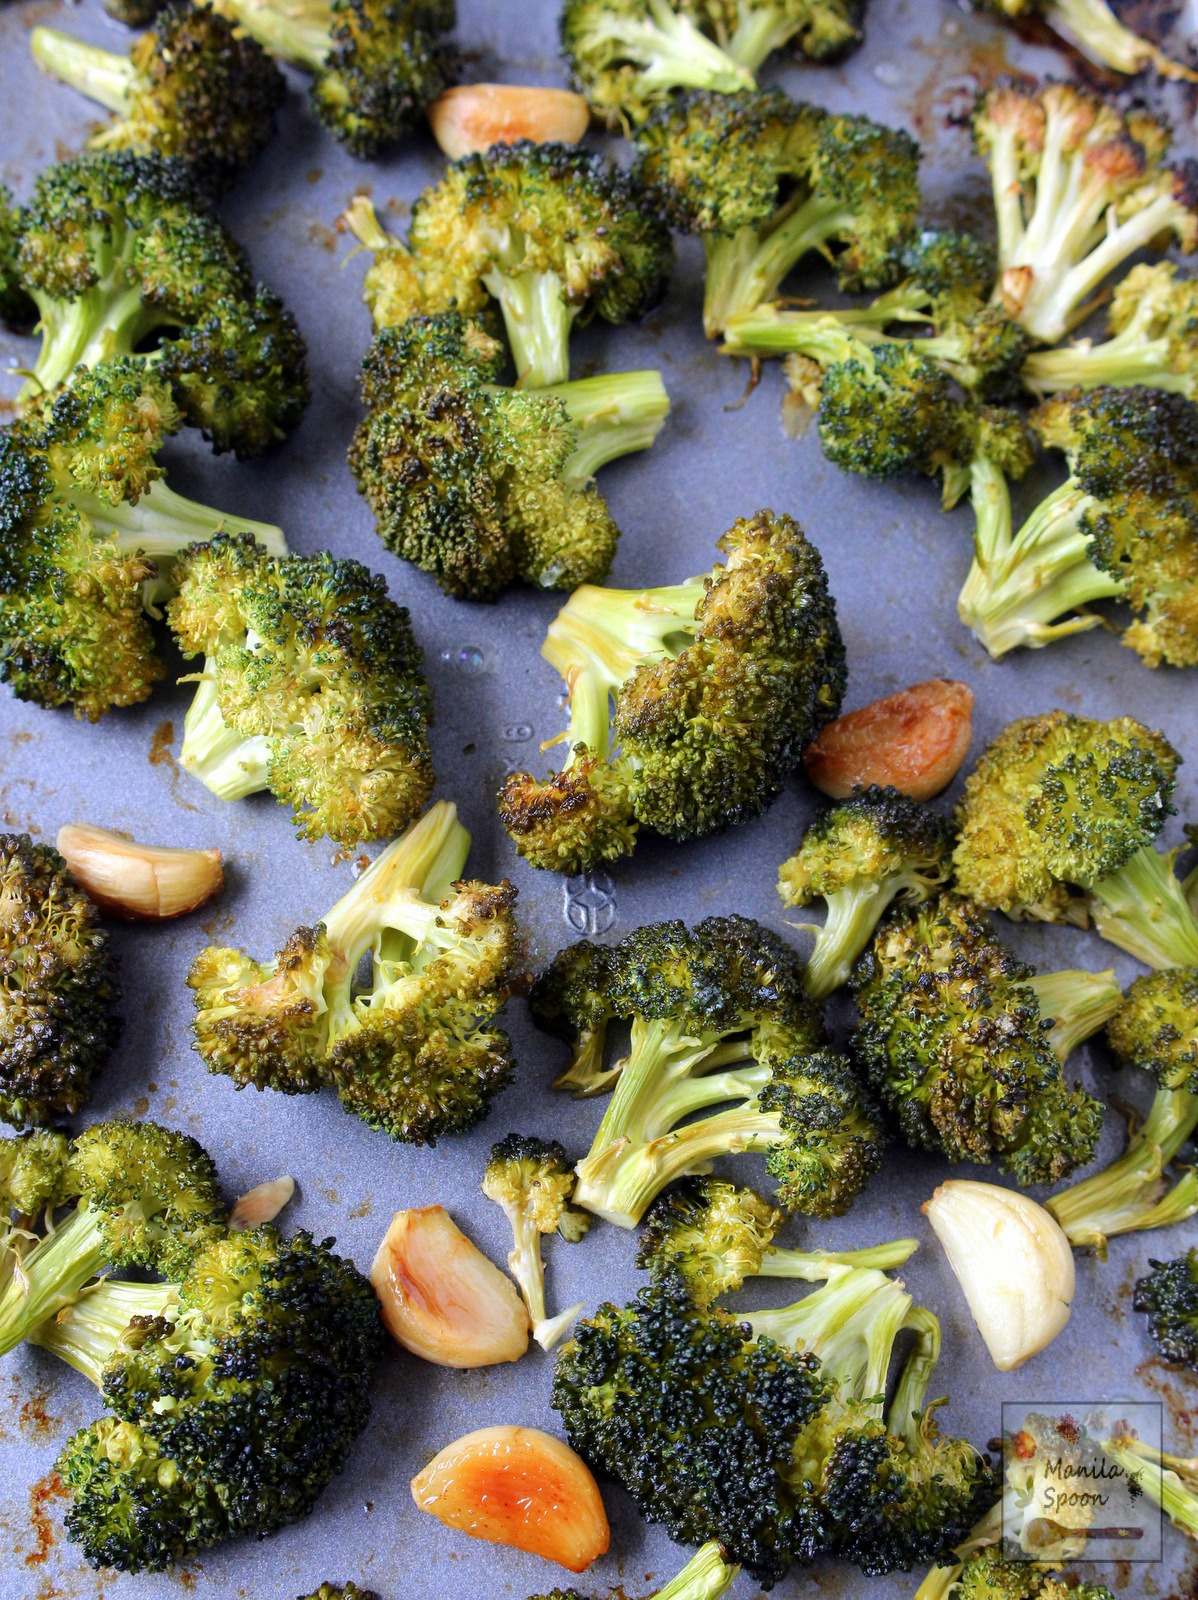 Garlicky, buttery, lemony and so tasty are these roasted broccoli florets! Quick and easy to make, low-carb and naturally gluten-free! | manilaspoon.com